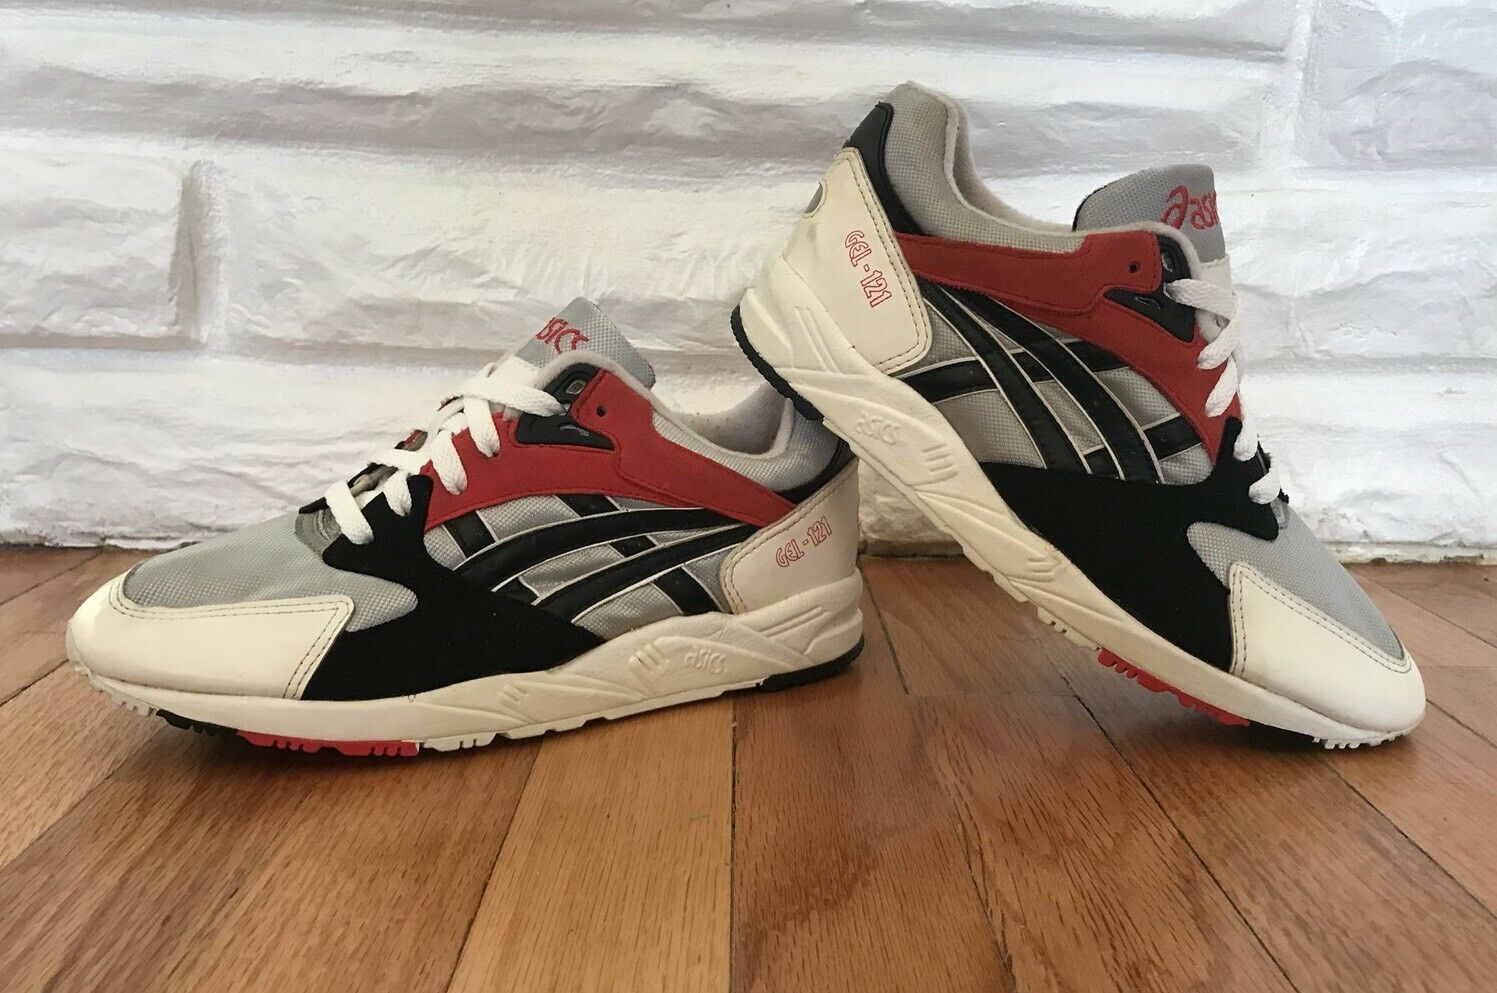 Deadstock New 90`S VINTAGE ASICS GEL-121 RUNNING shoes Size 6